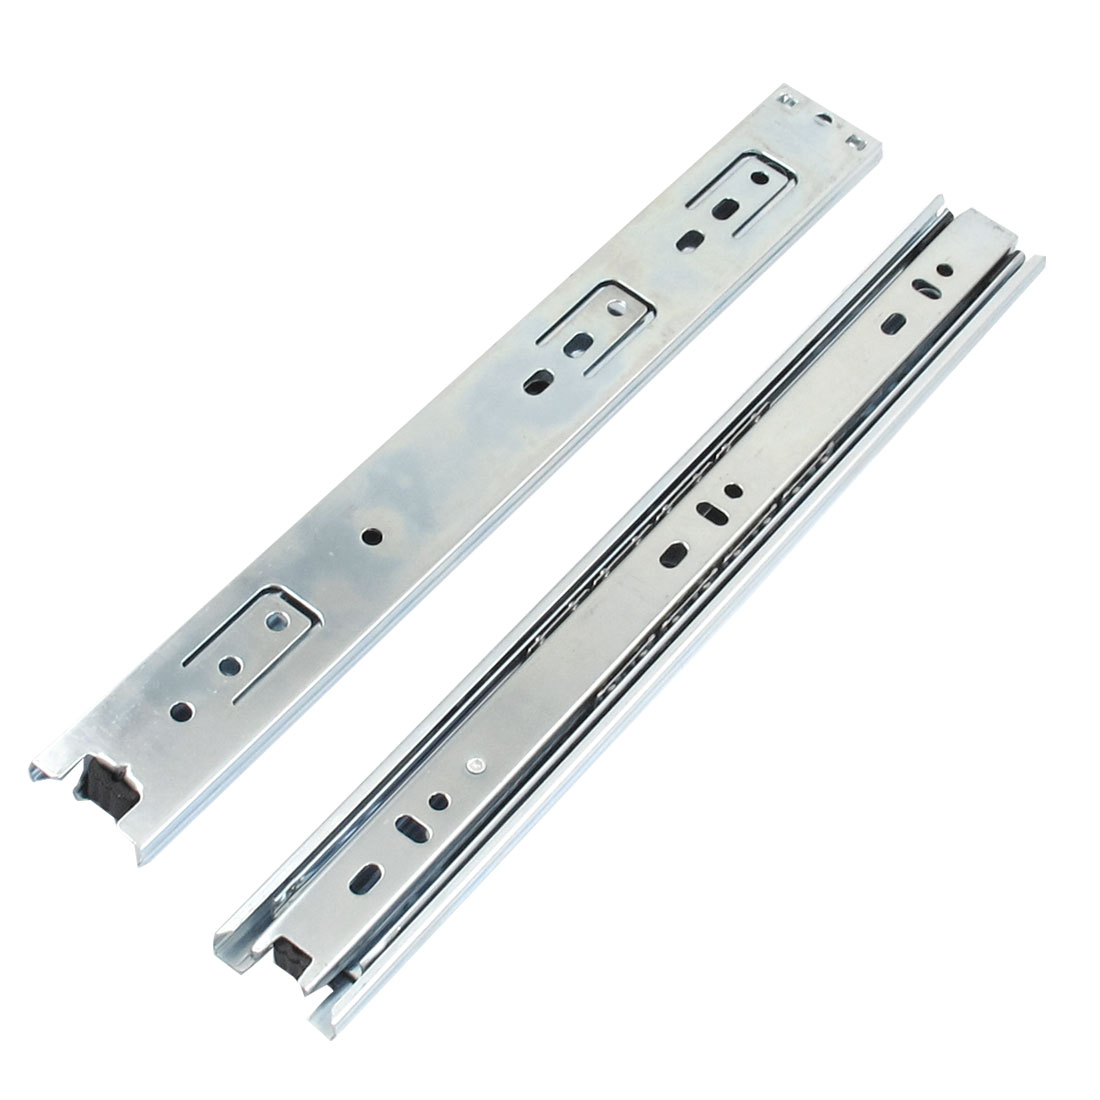 "2 Pcs 11"" 3-fold Ball Bearing Telescopic Drawer Slide Rails"